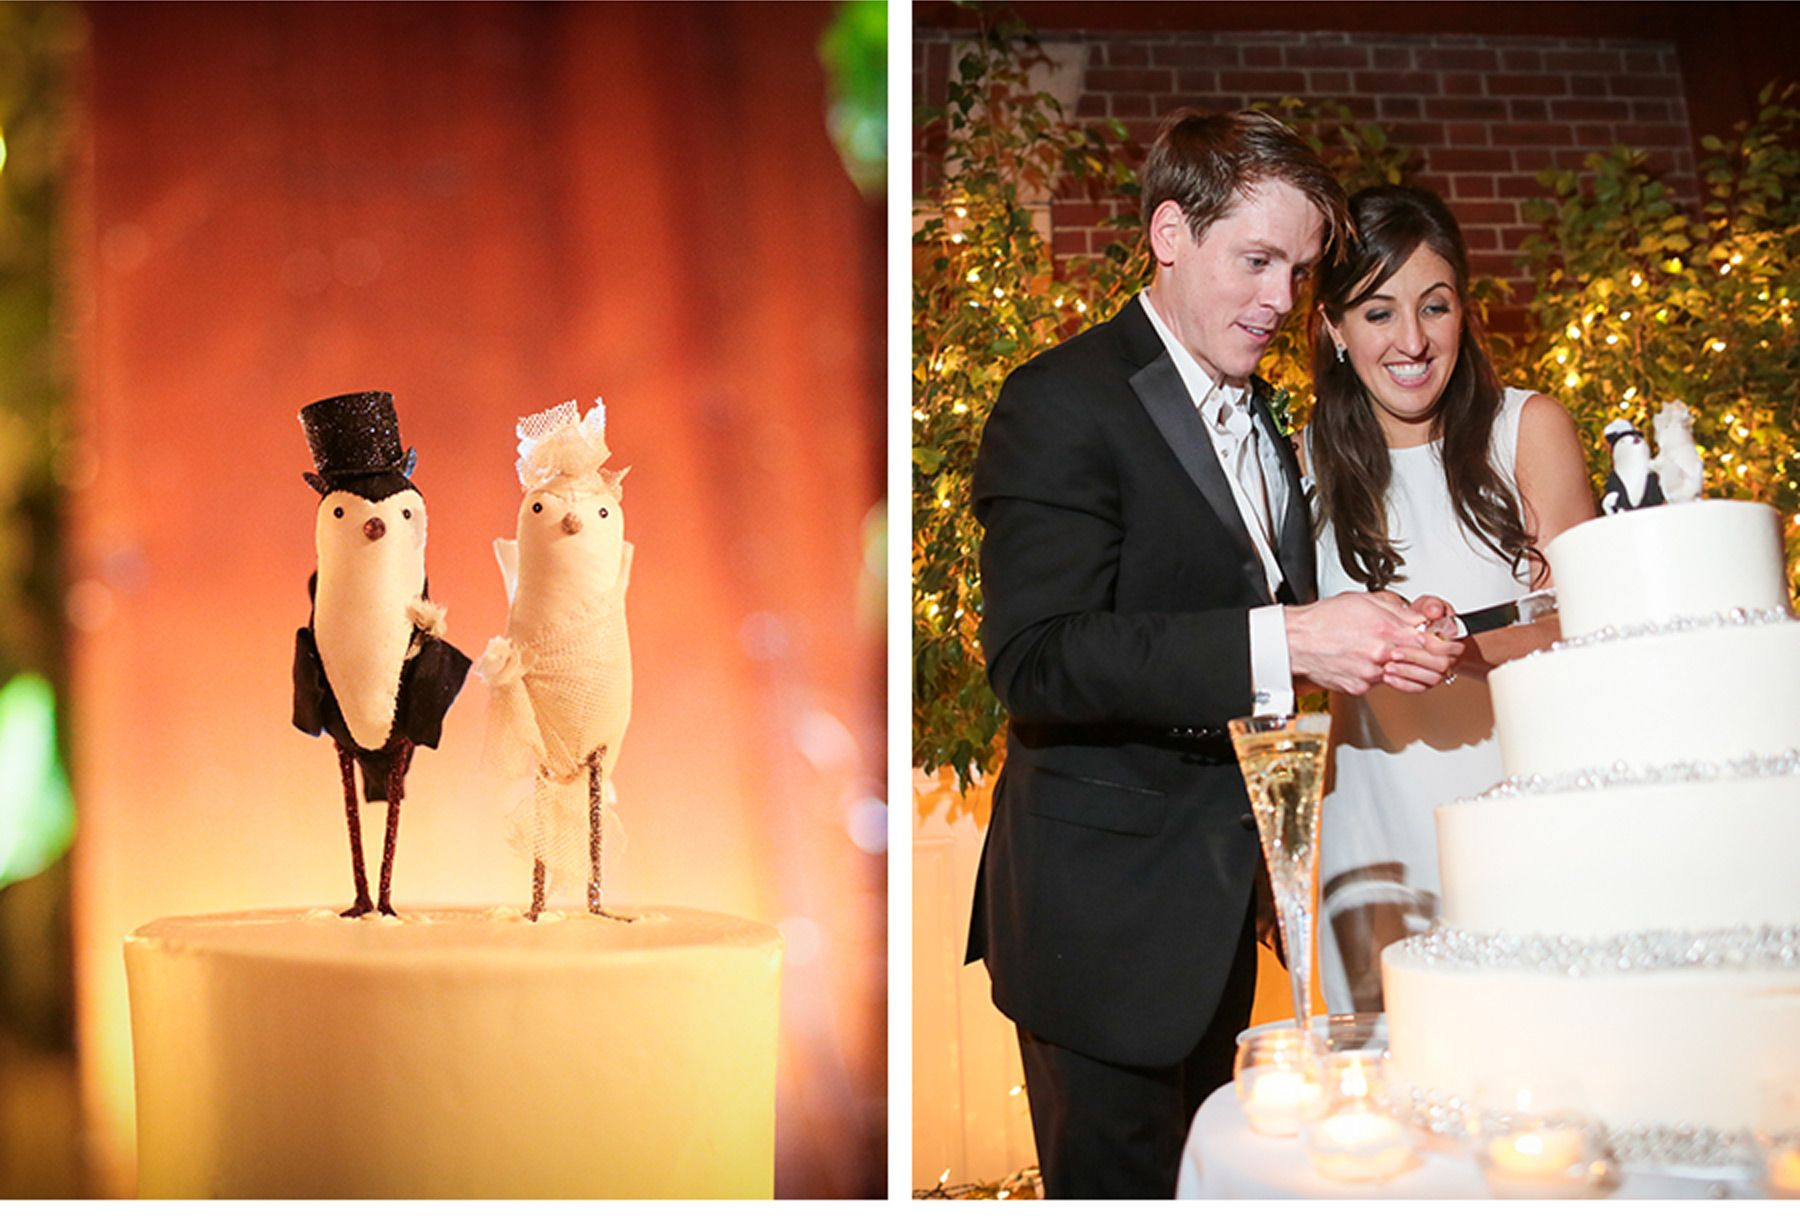 Winter Wedding at The Loeb Boathouse Central Park - Be inspired by Carter & Brad's snowy New York City wedding at The Loeb Boathouse Central Park #wedding #nyc #newyorkcity #winter #bestinsnow #december #cake #snowflake #bride #groom #bird #caketopper #silver